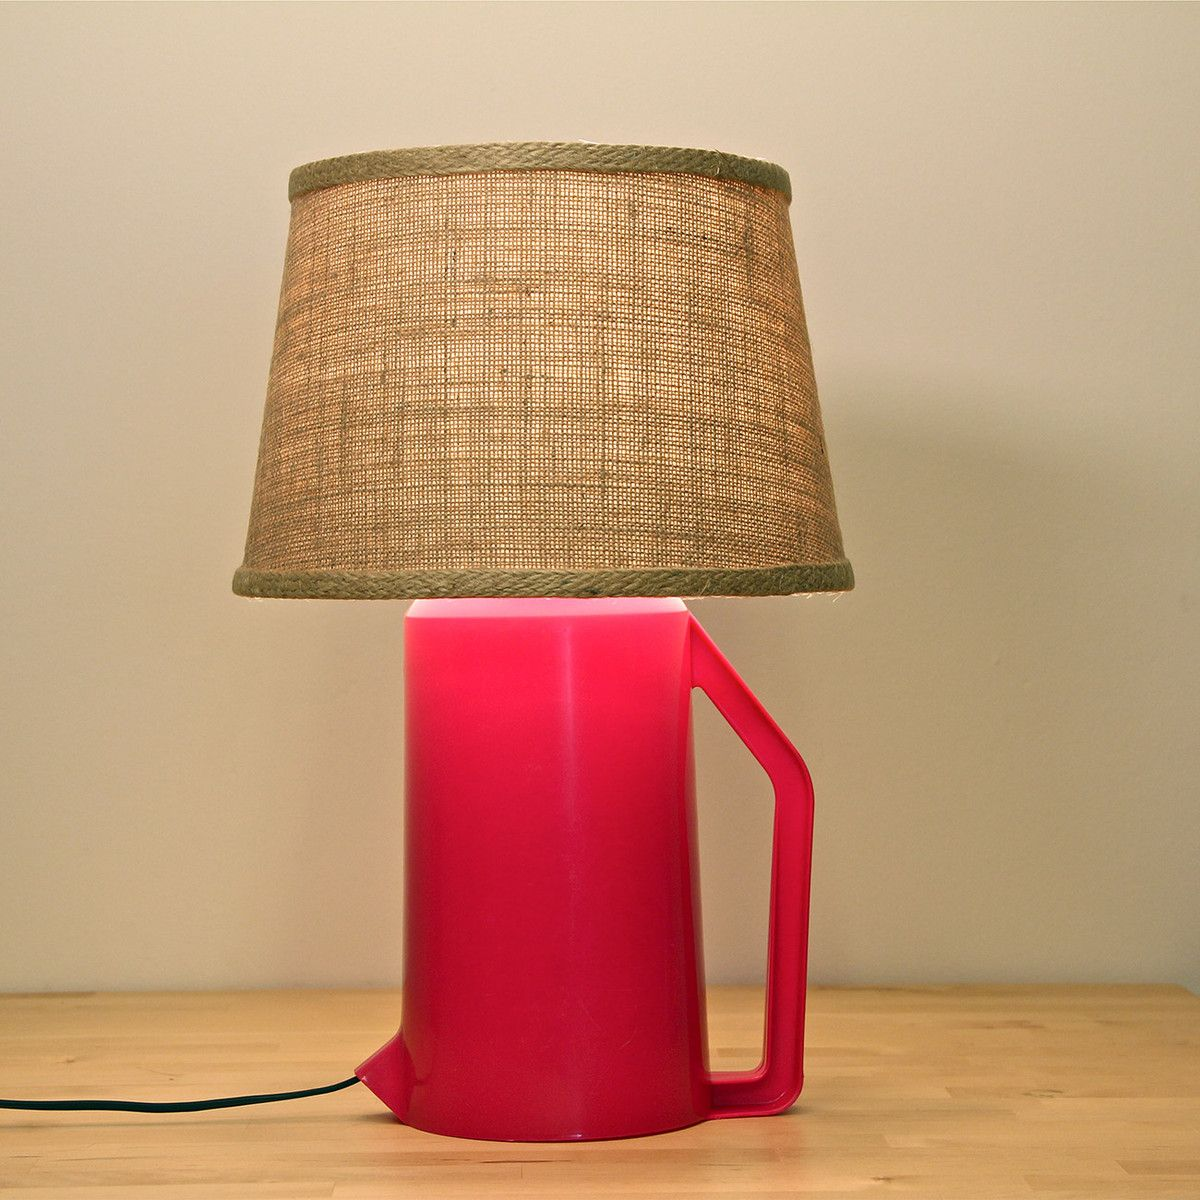 More Upcycled Plastic 130 100 Rubbermaid Pitcher Lamp